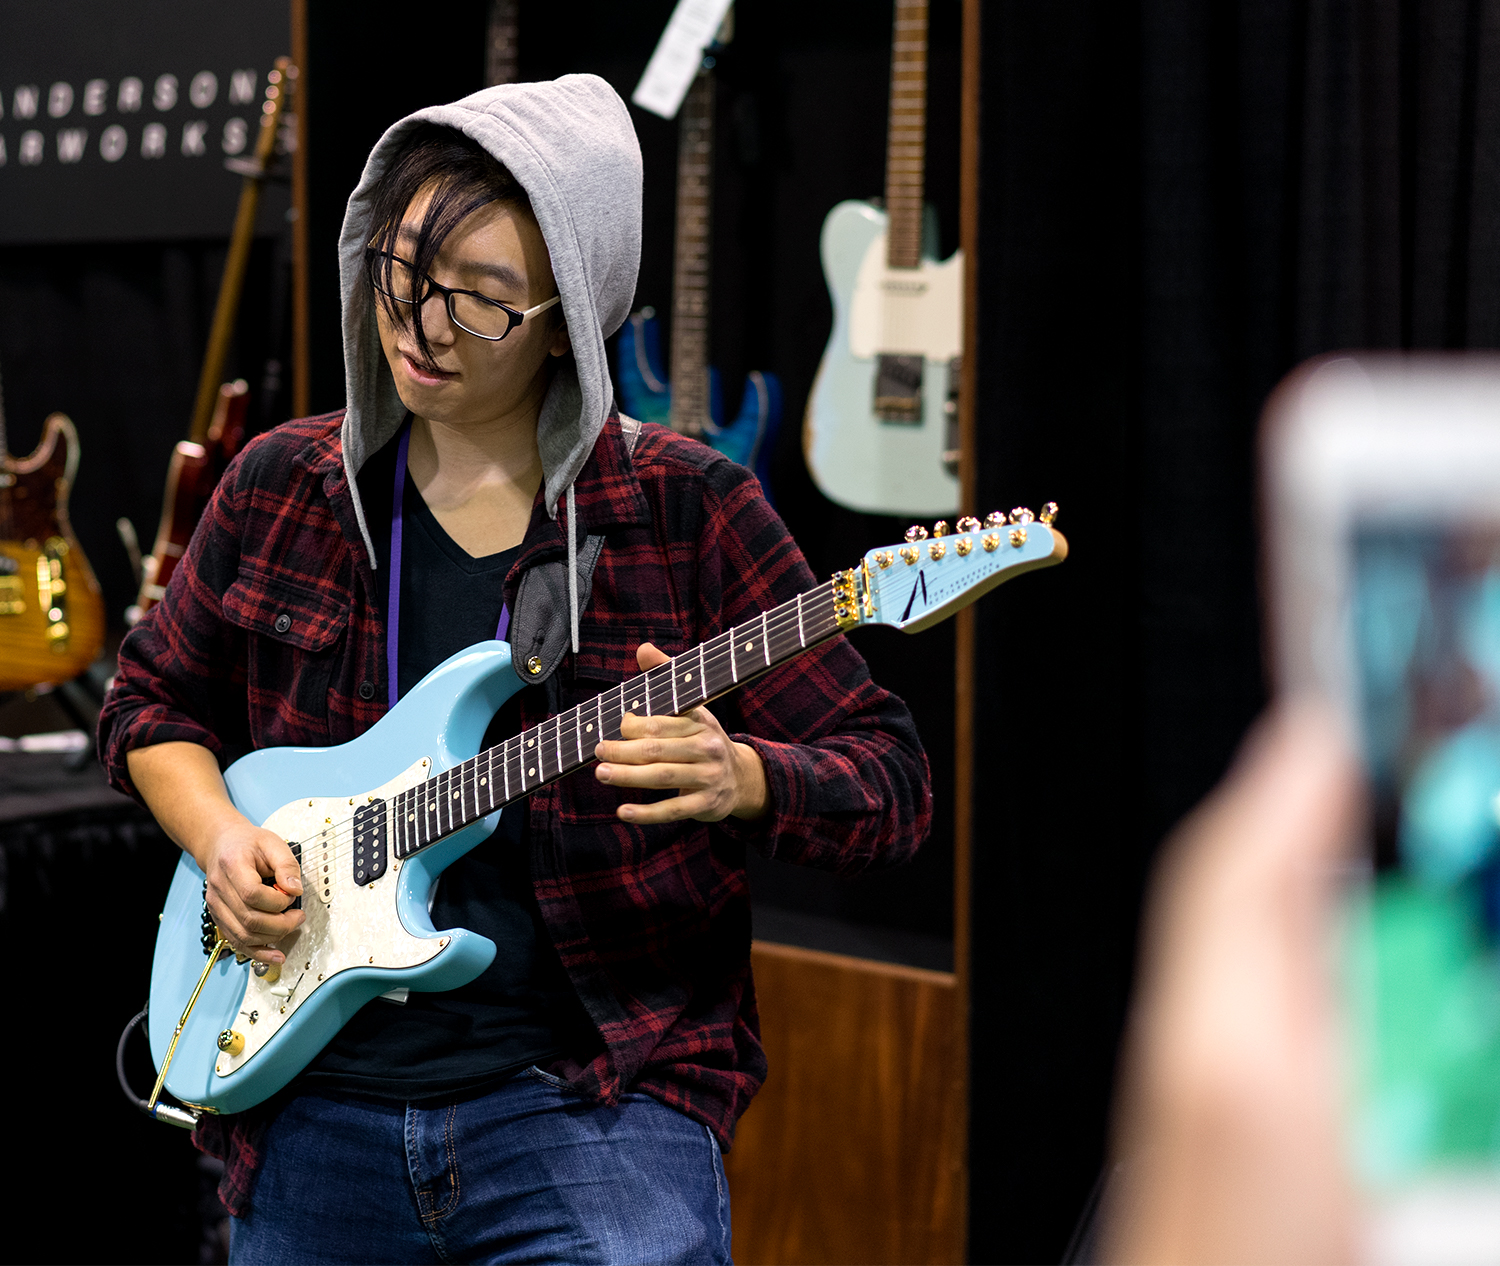 11-30-15A_The Classic_Light Baby Blue_Funtwo_NAMM 18-4.jpg